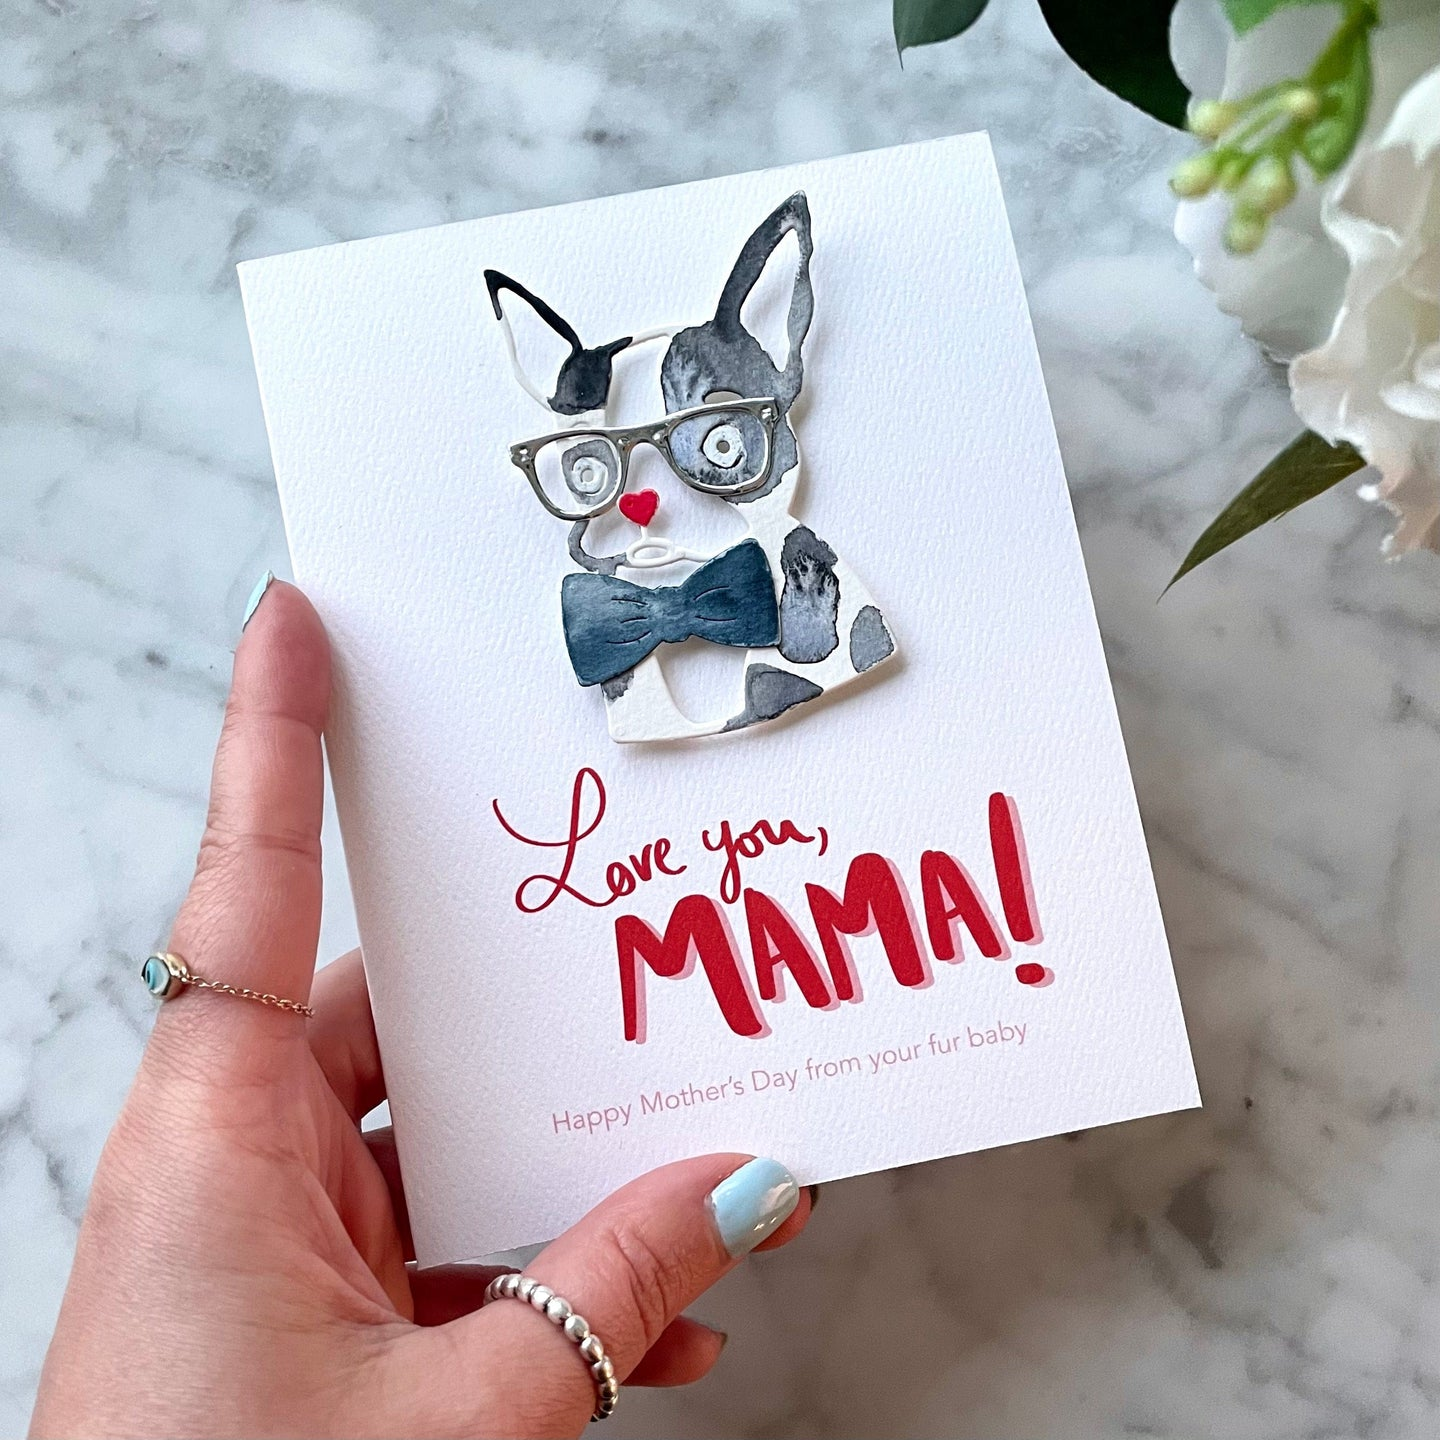 The Frenchie Dog Mom / Dad Card